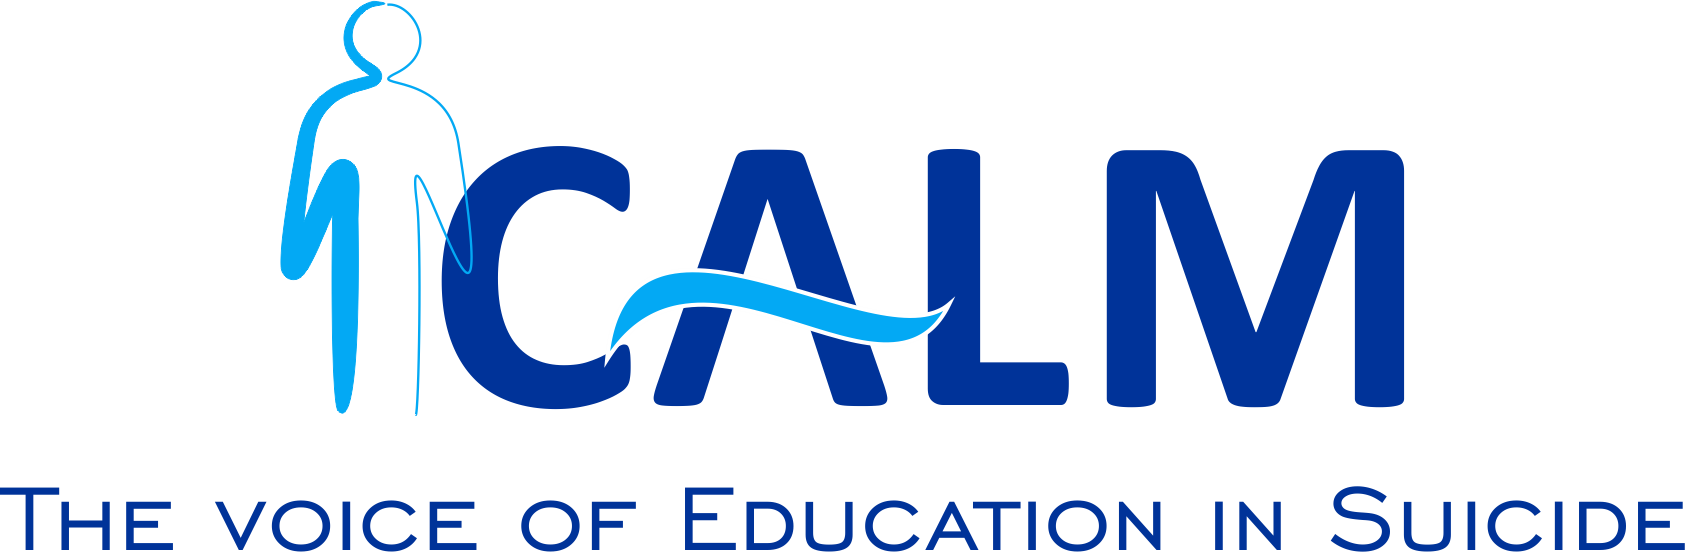 CALM The Voice of Education in Suicide logo